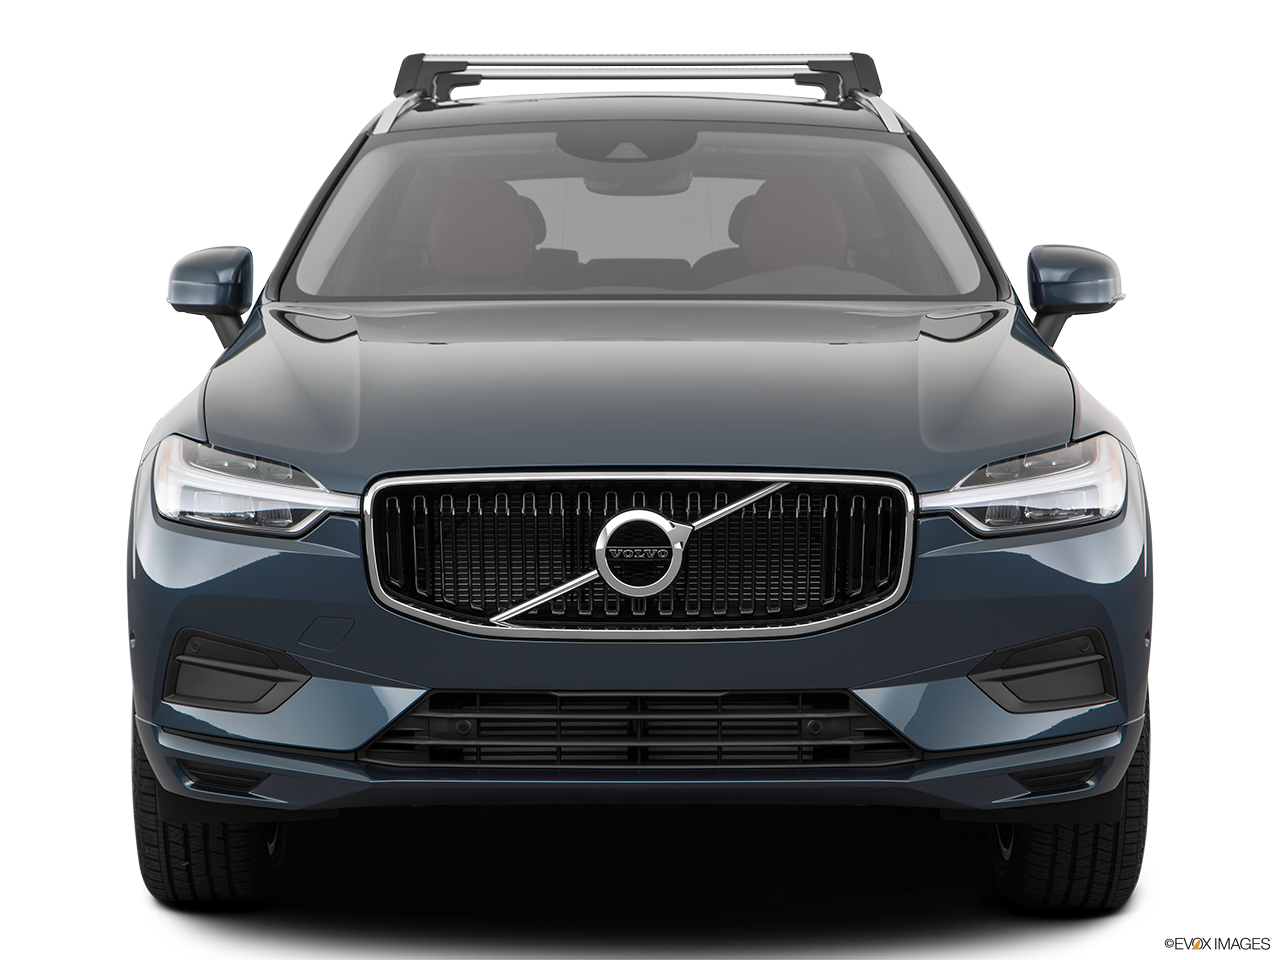 Front view of the Volvo XC60 PHEV